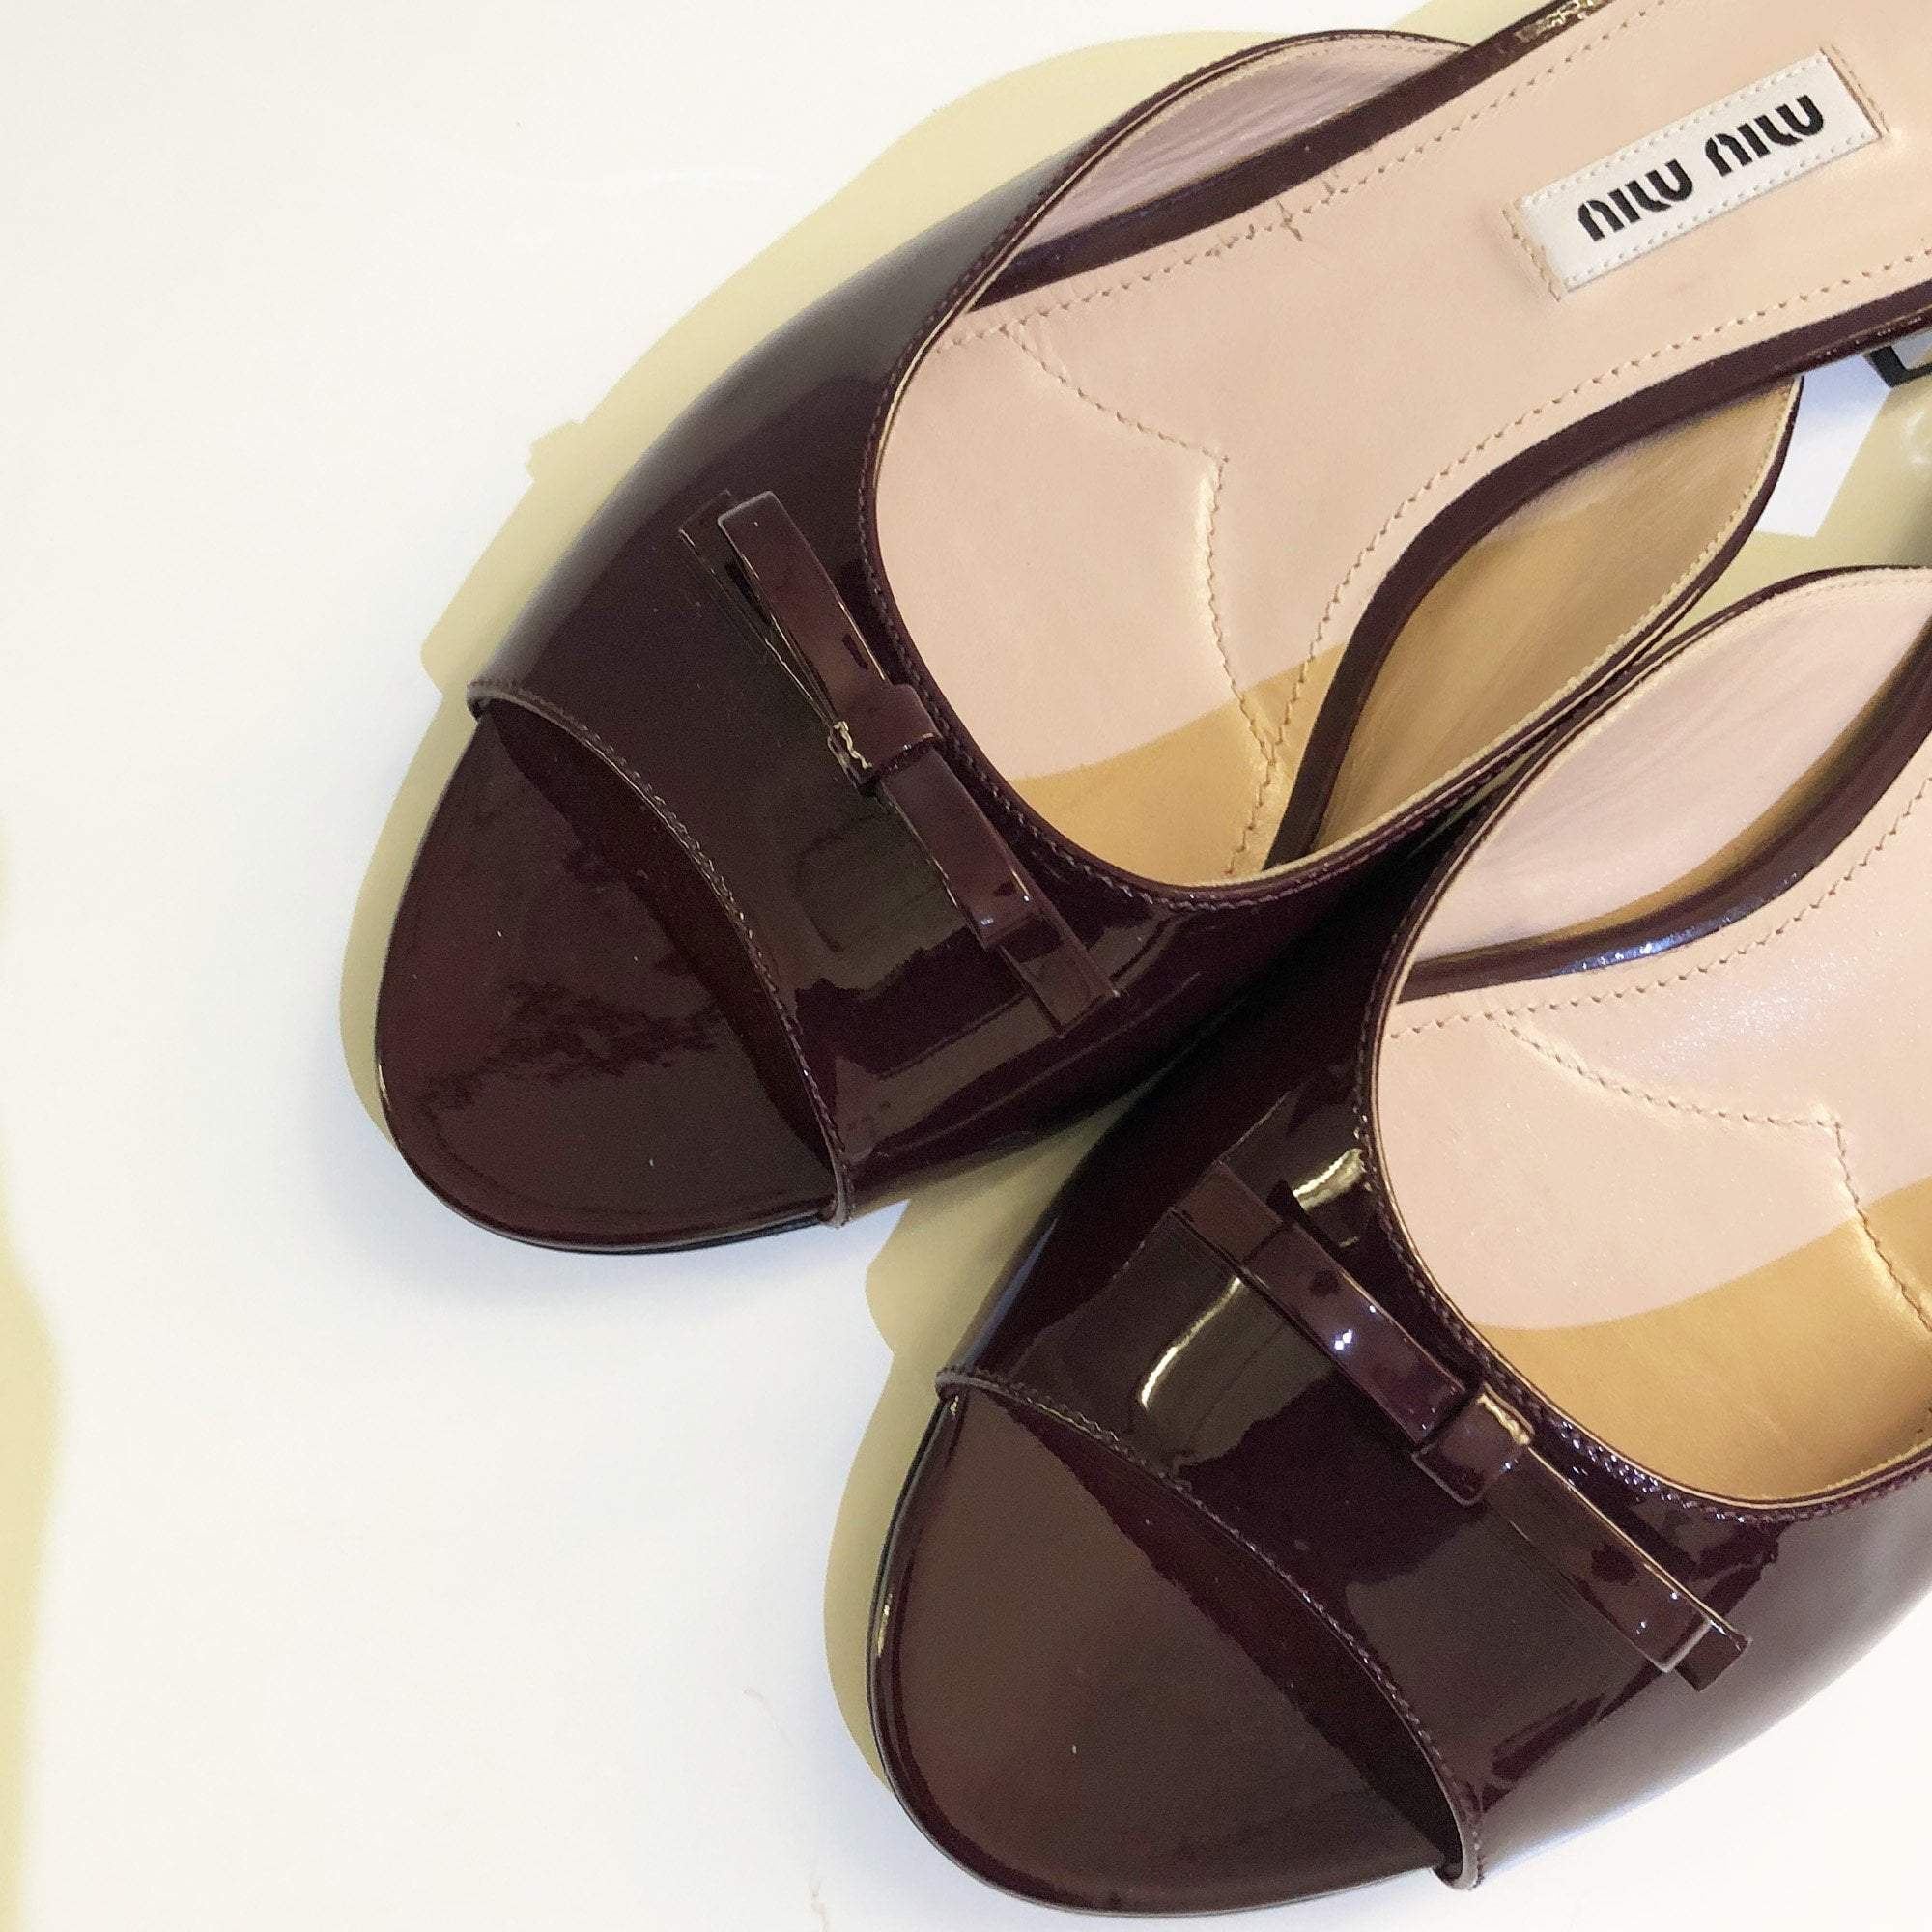 Miu Miu Burgundy Patent Leather Slip-On Sandal